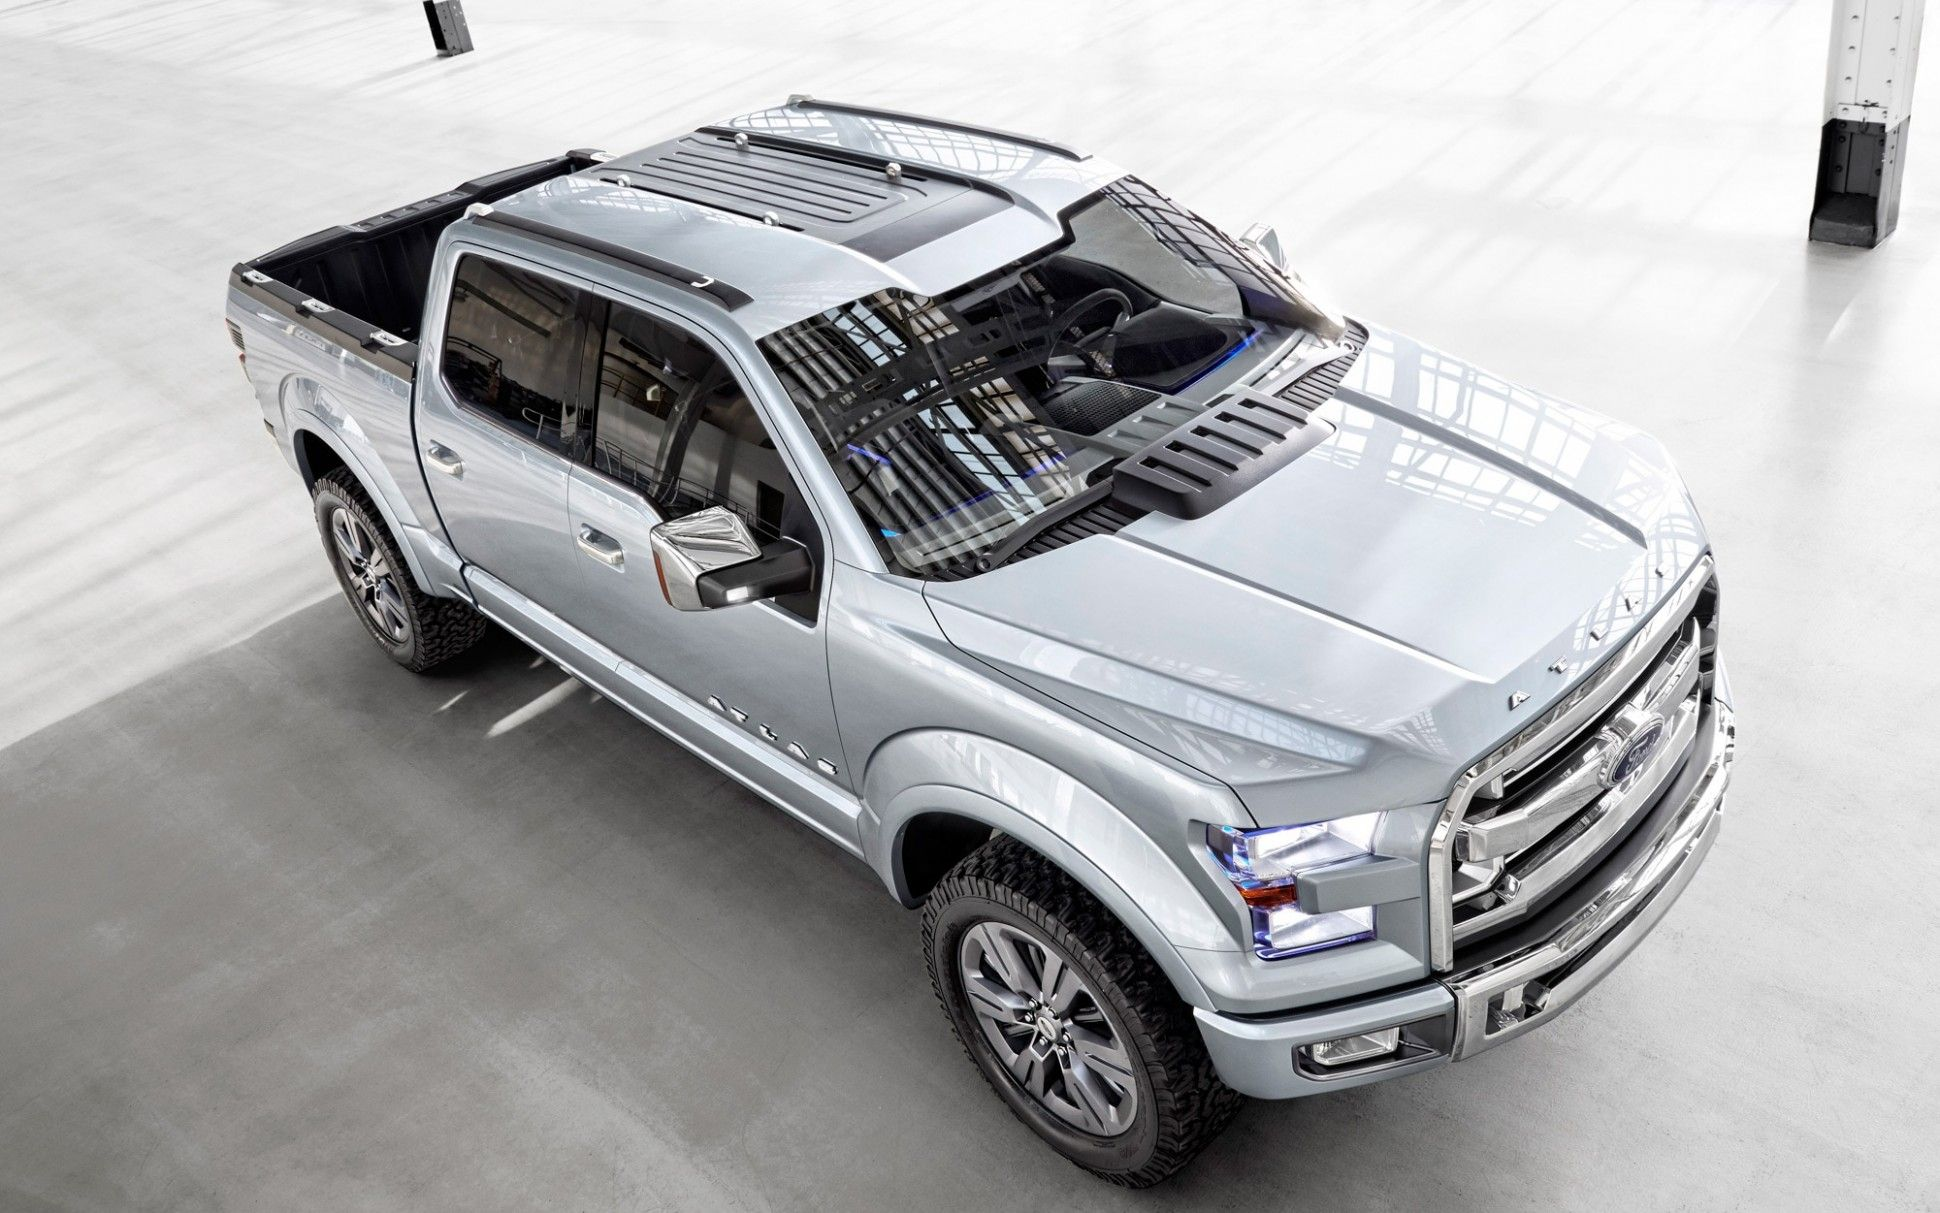 Ford F150 Sales Numbers Indicate Ascending Growth For The All